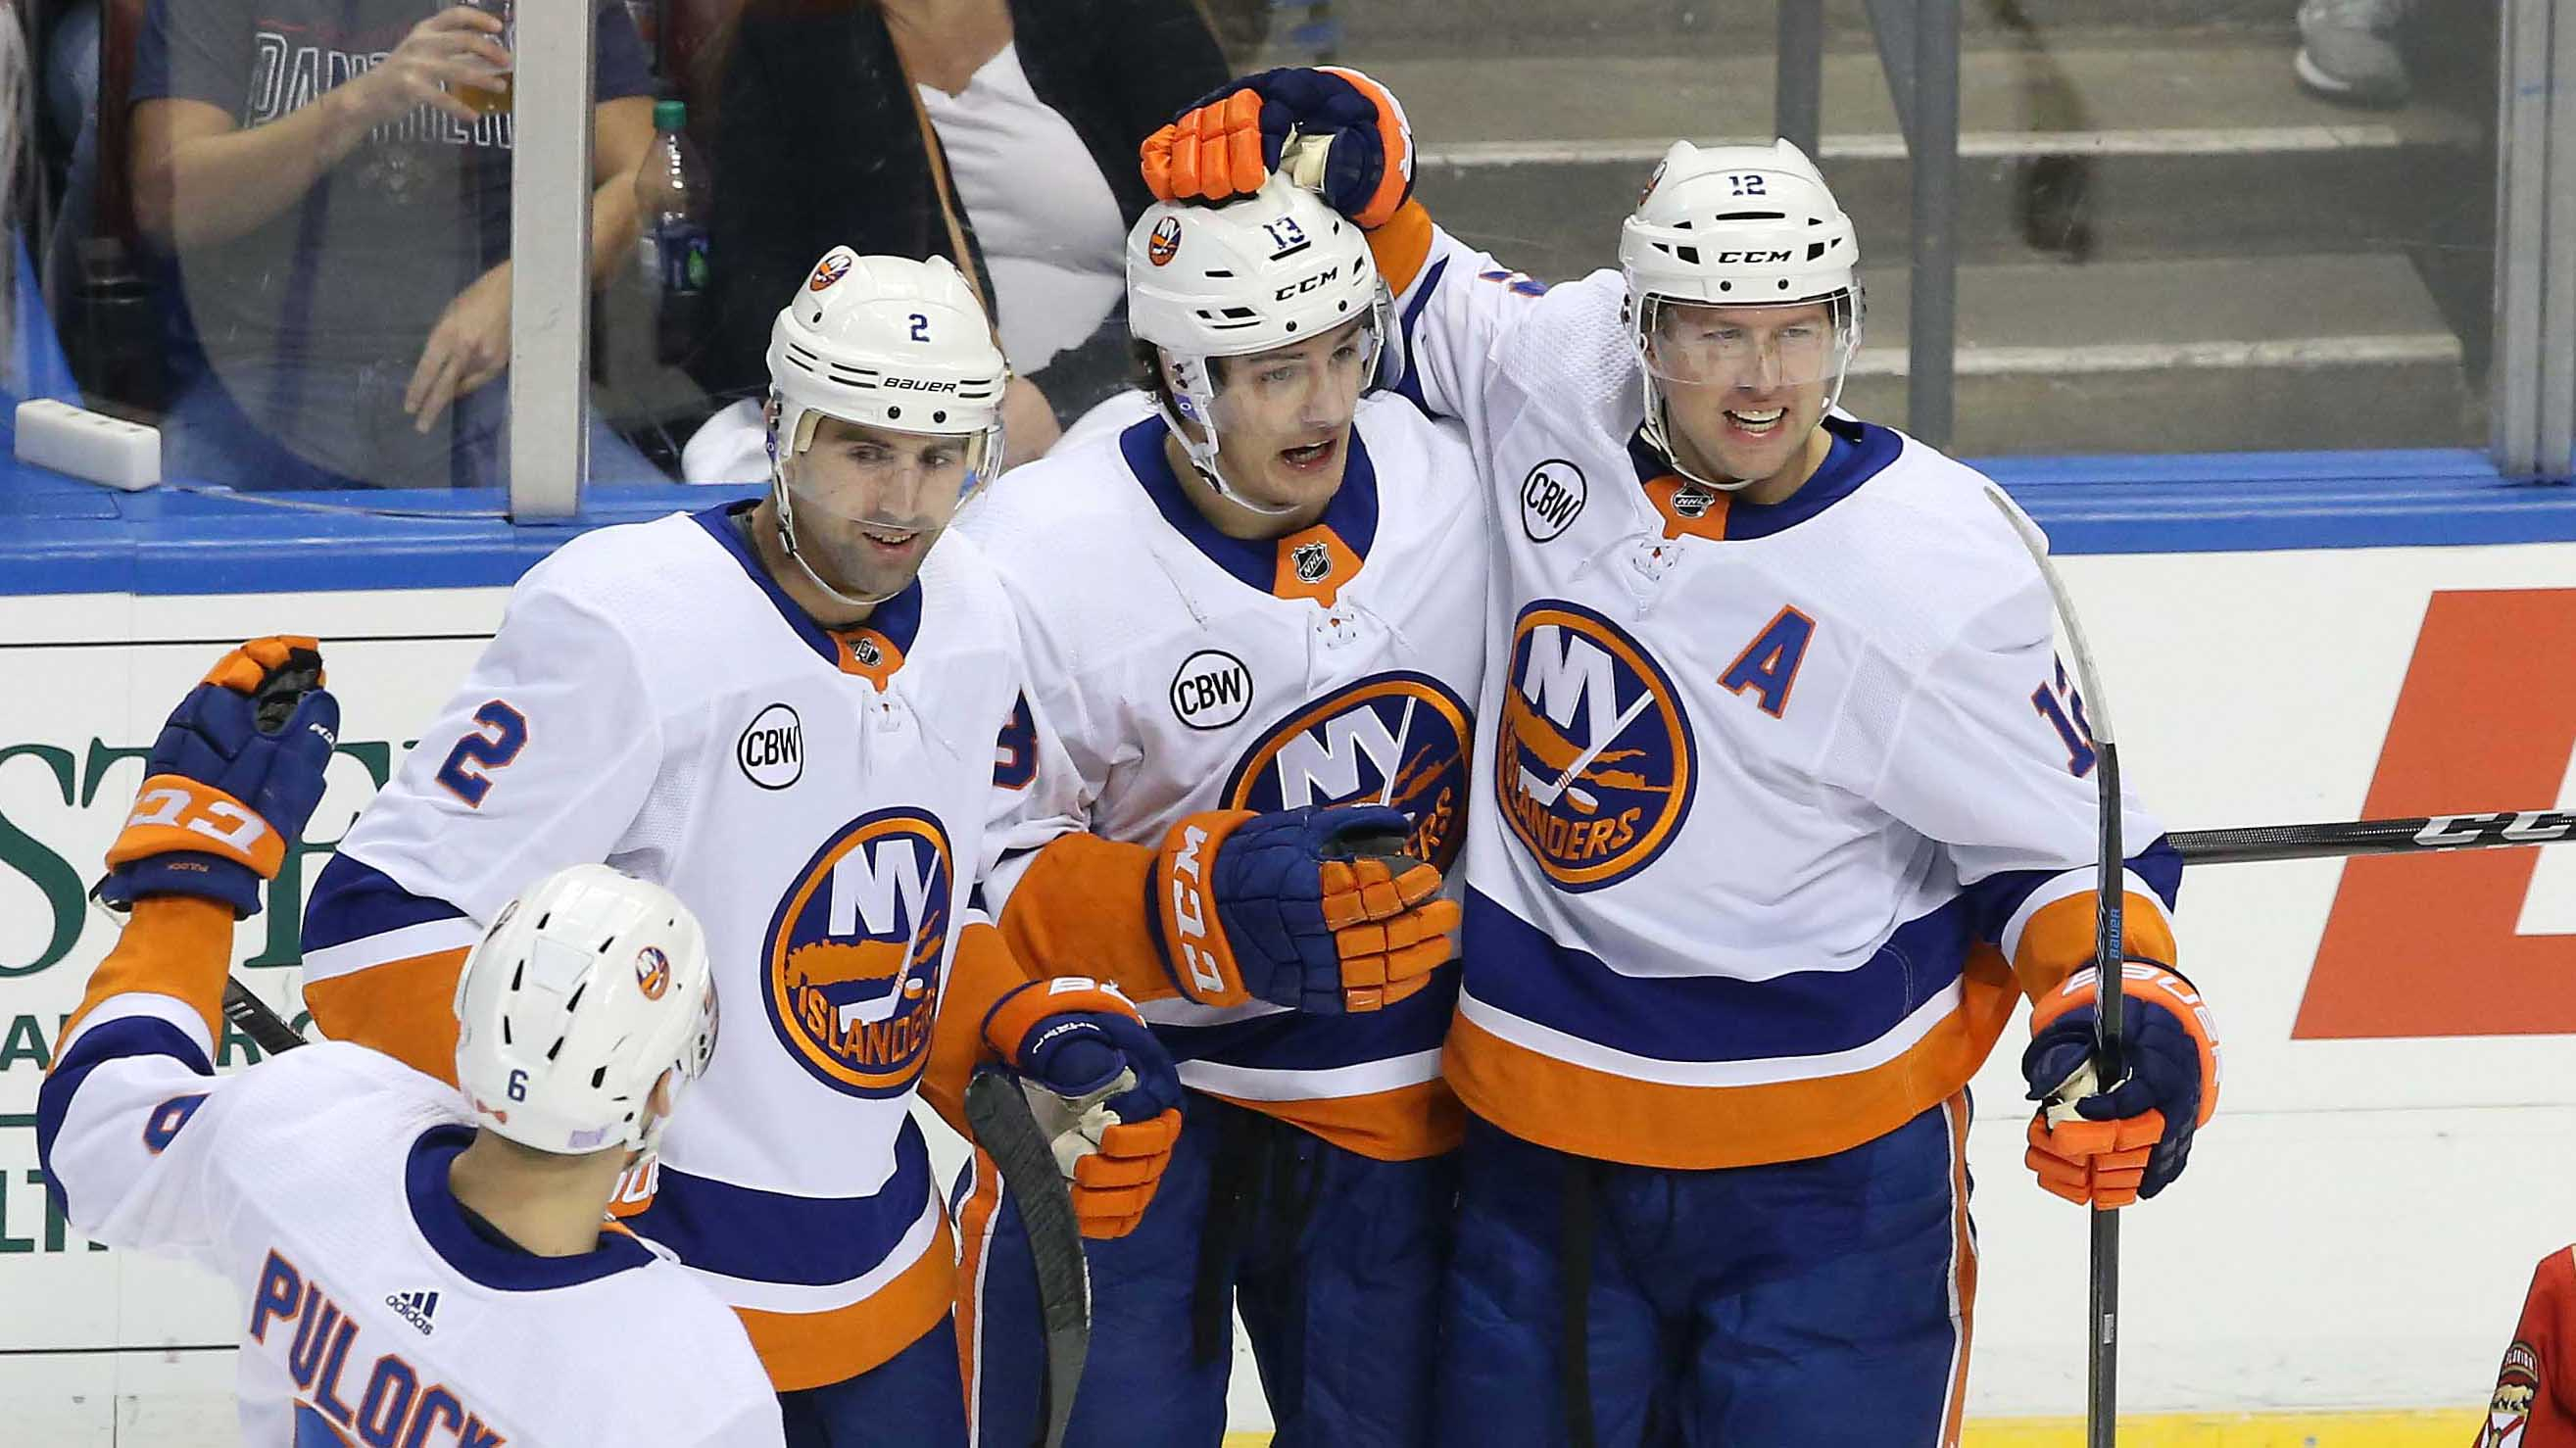 Nov 10, 2018; Sunrise, FL, USA; New York Islanders center Mathew Barzal (13) celebrates his goal against the Florida Panthers with left wing Josh Bailey (12) and defenseman Nick Leddy (2) in the first period at BB&T Center. Mandatory Credit: Robert Mayer-USA TODAY Sports